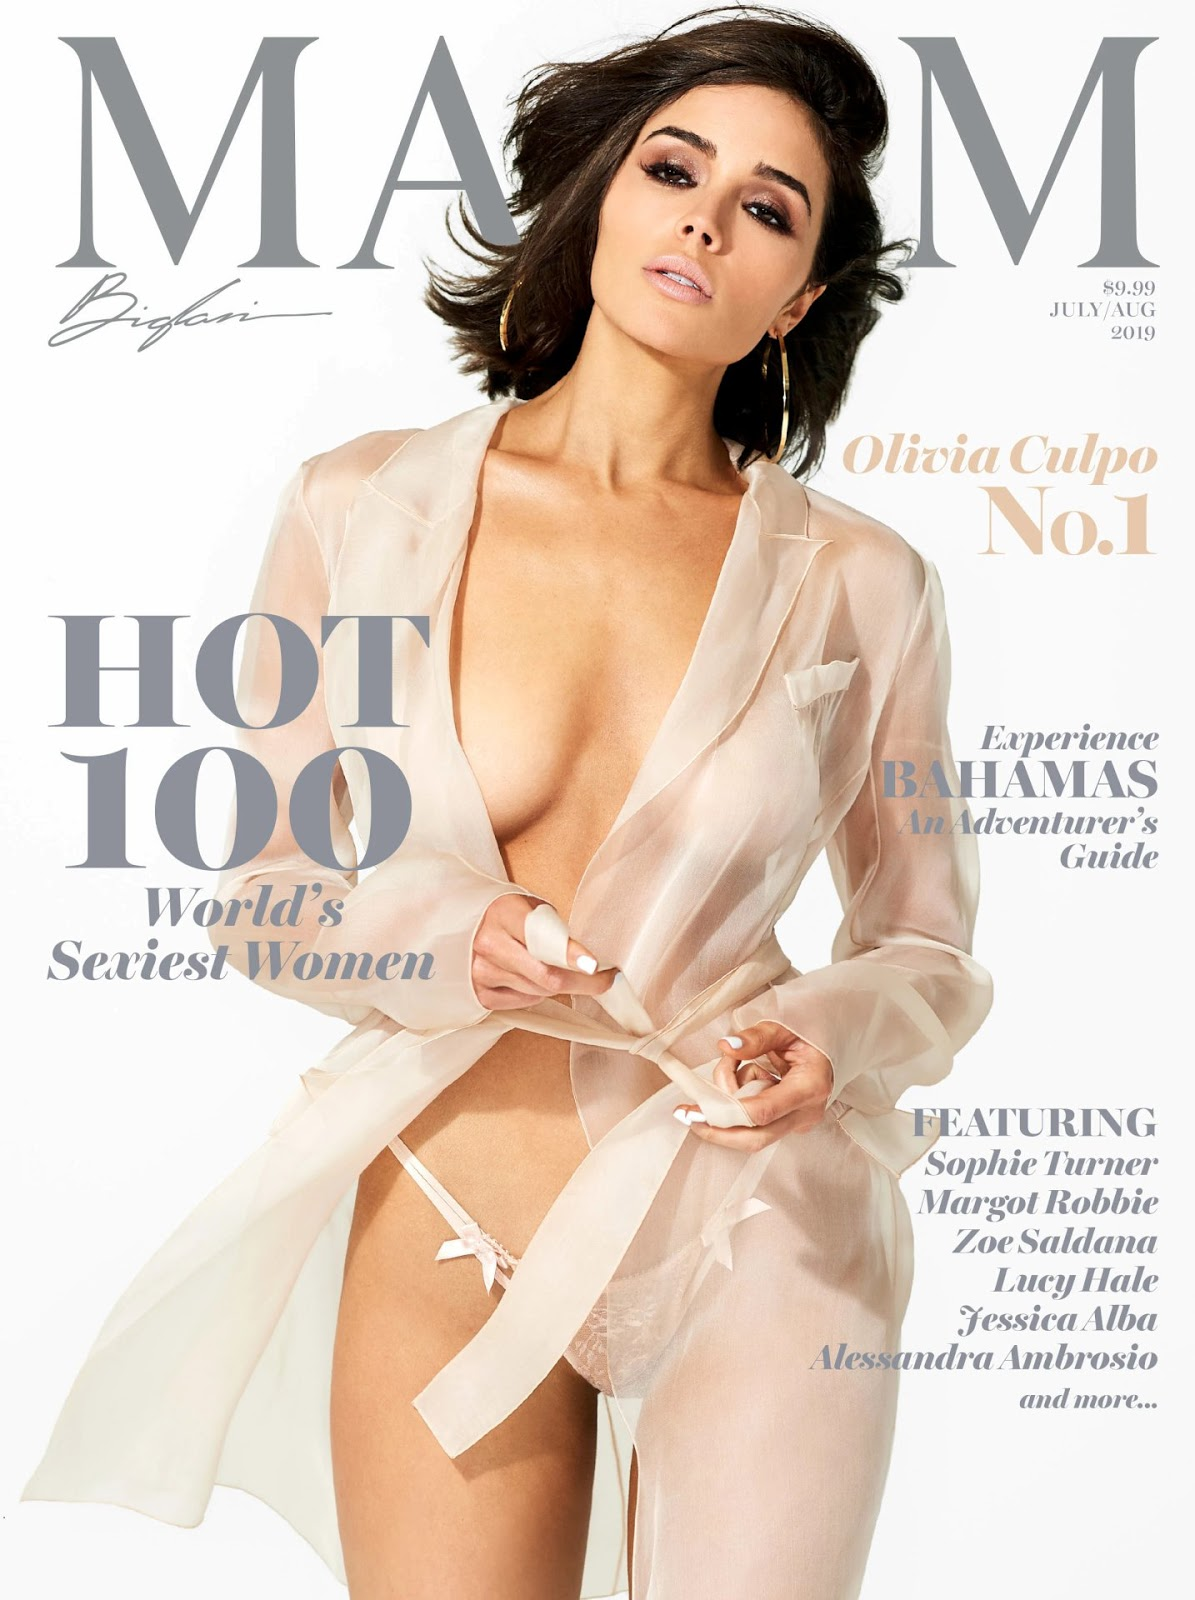 Instagram star and former Miss Universe shines in exclusive photos from Maxim's annual Hot 100 issue.